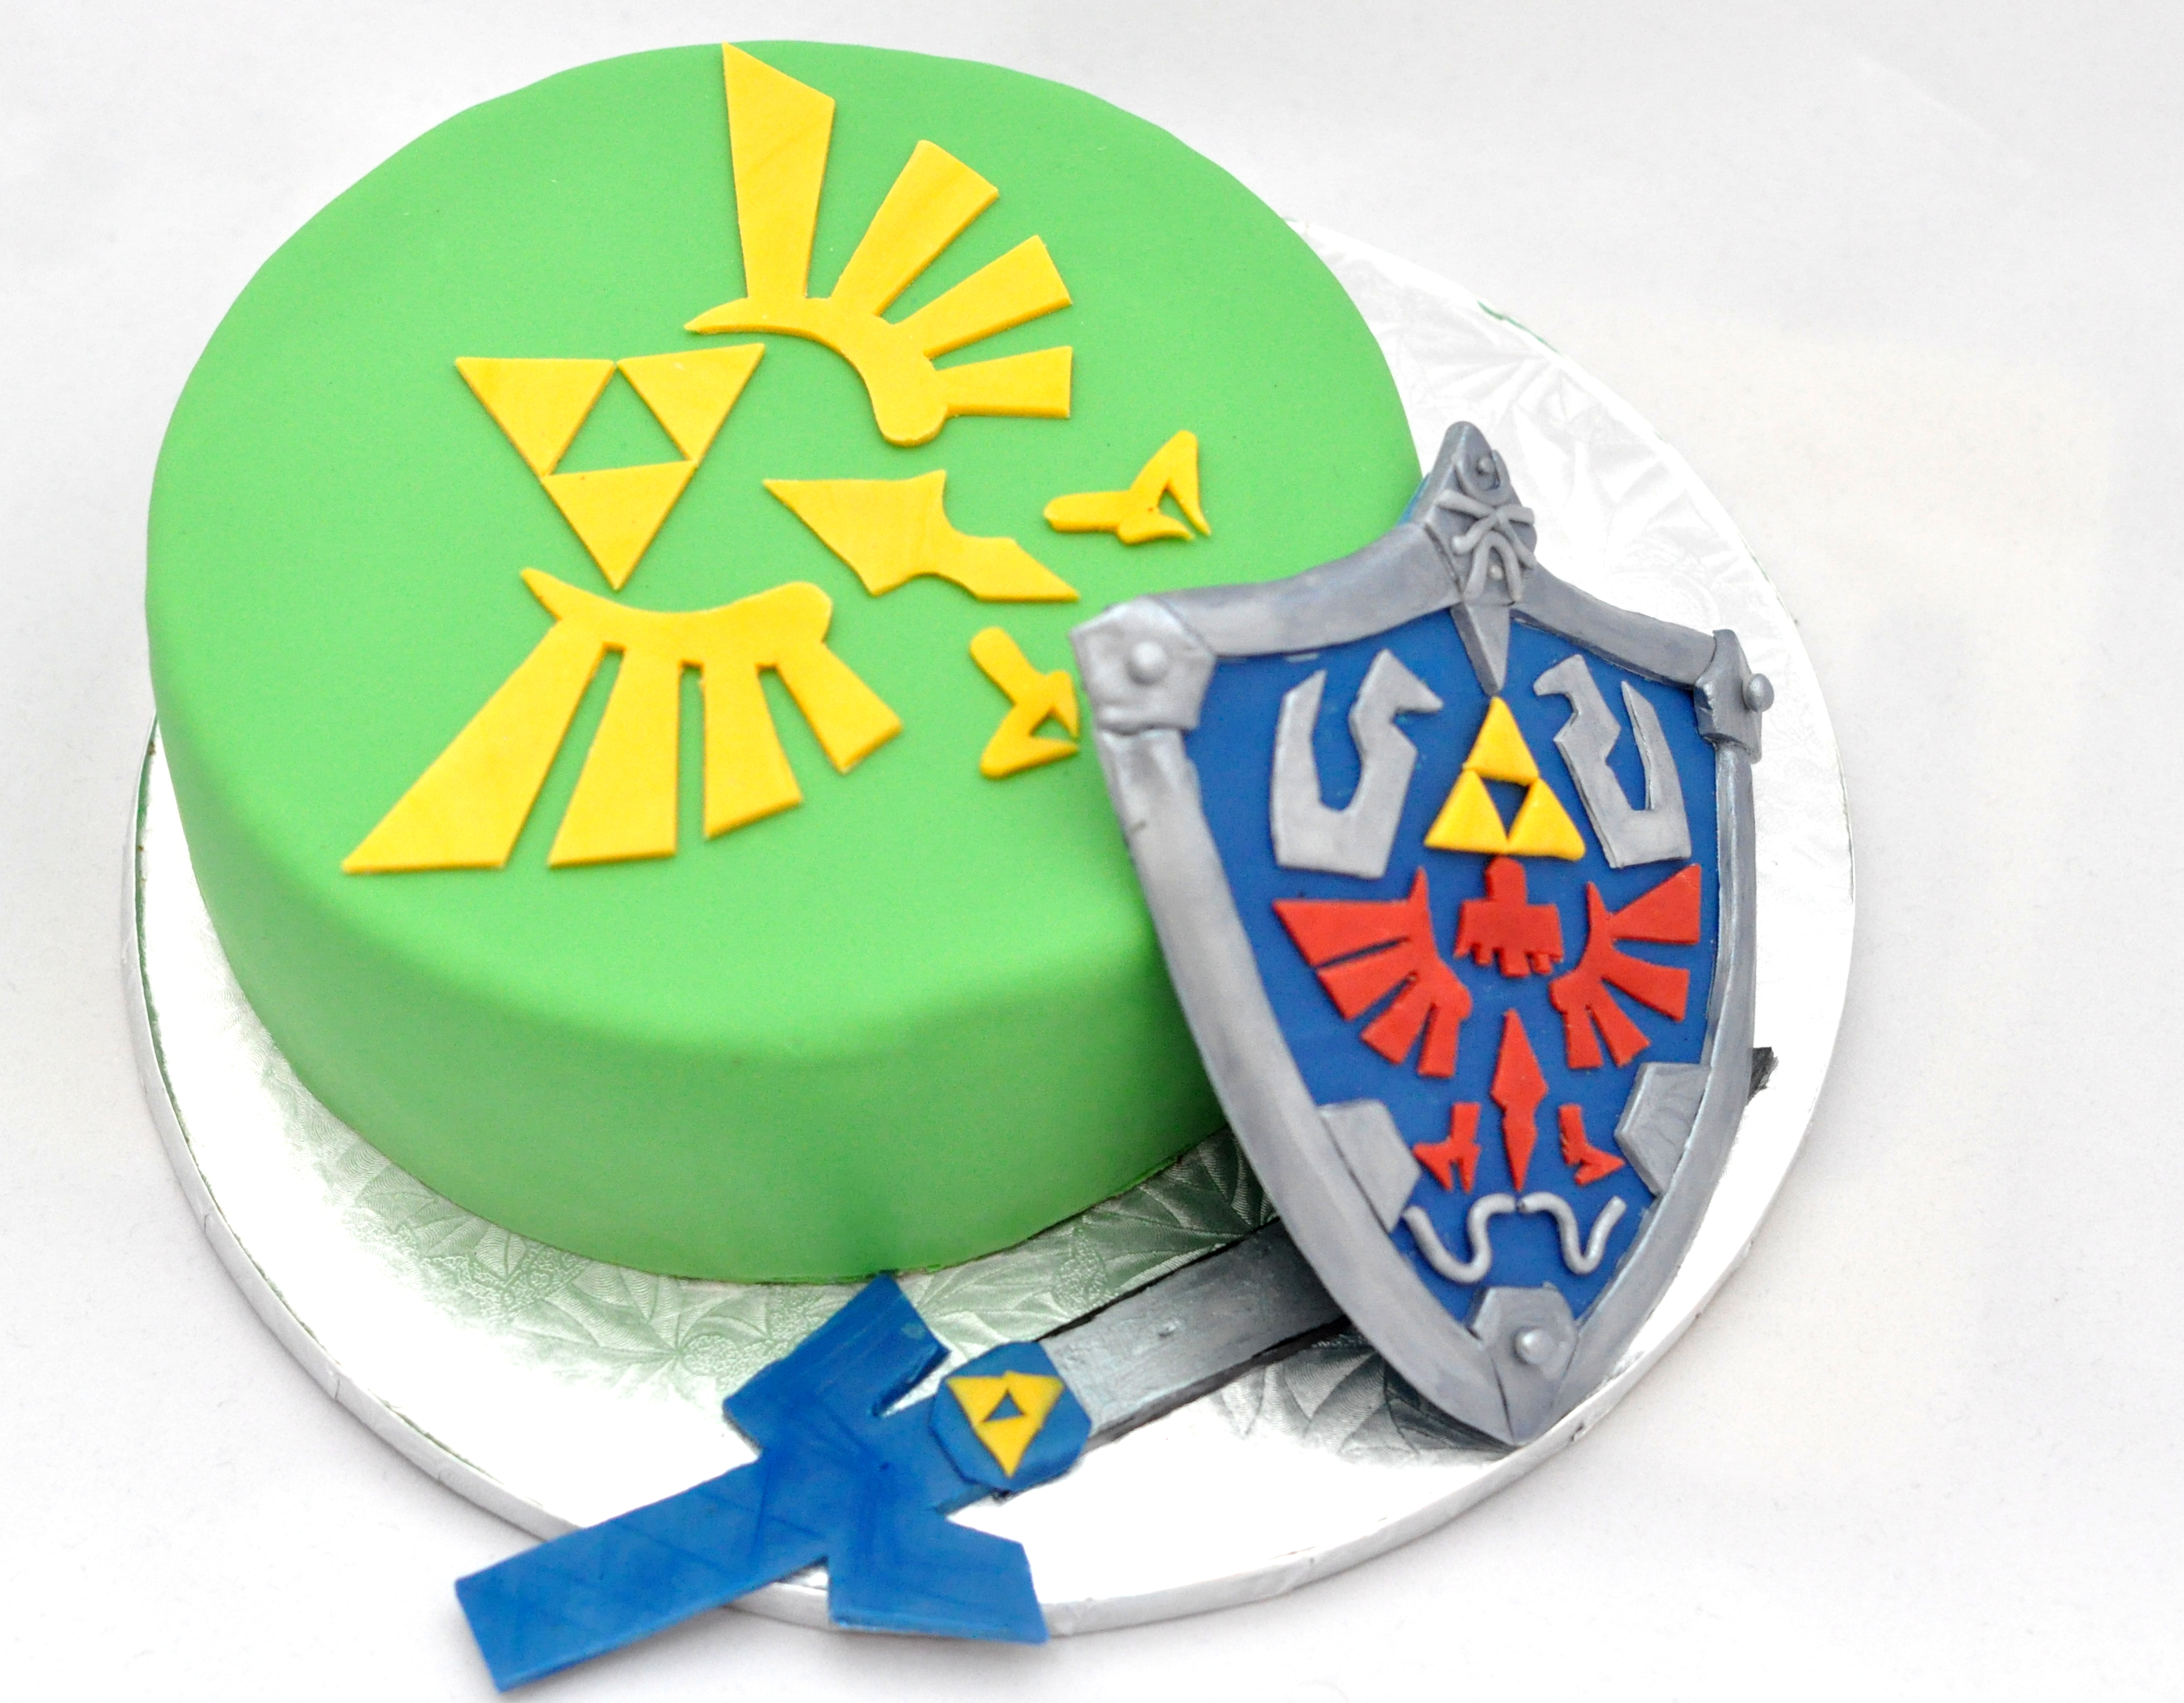 Tort 'Legend of Zelda' (Bake-o-holic)